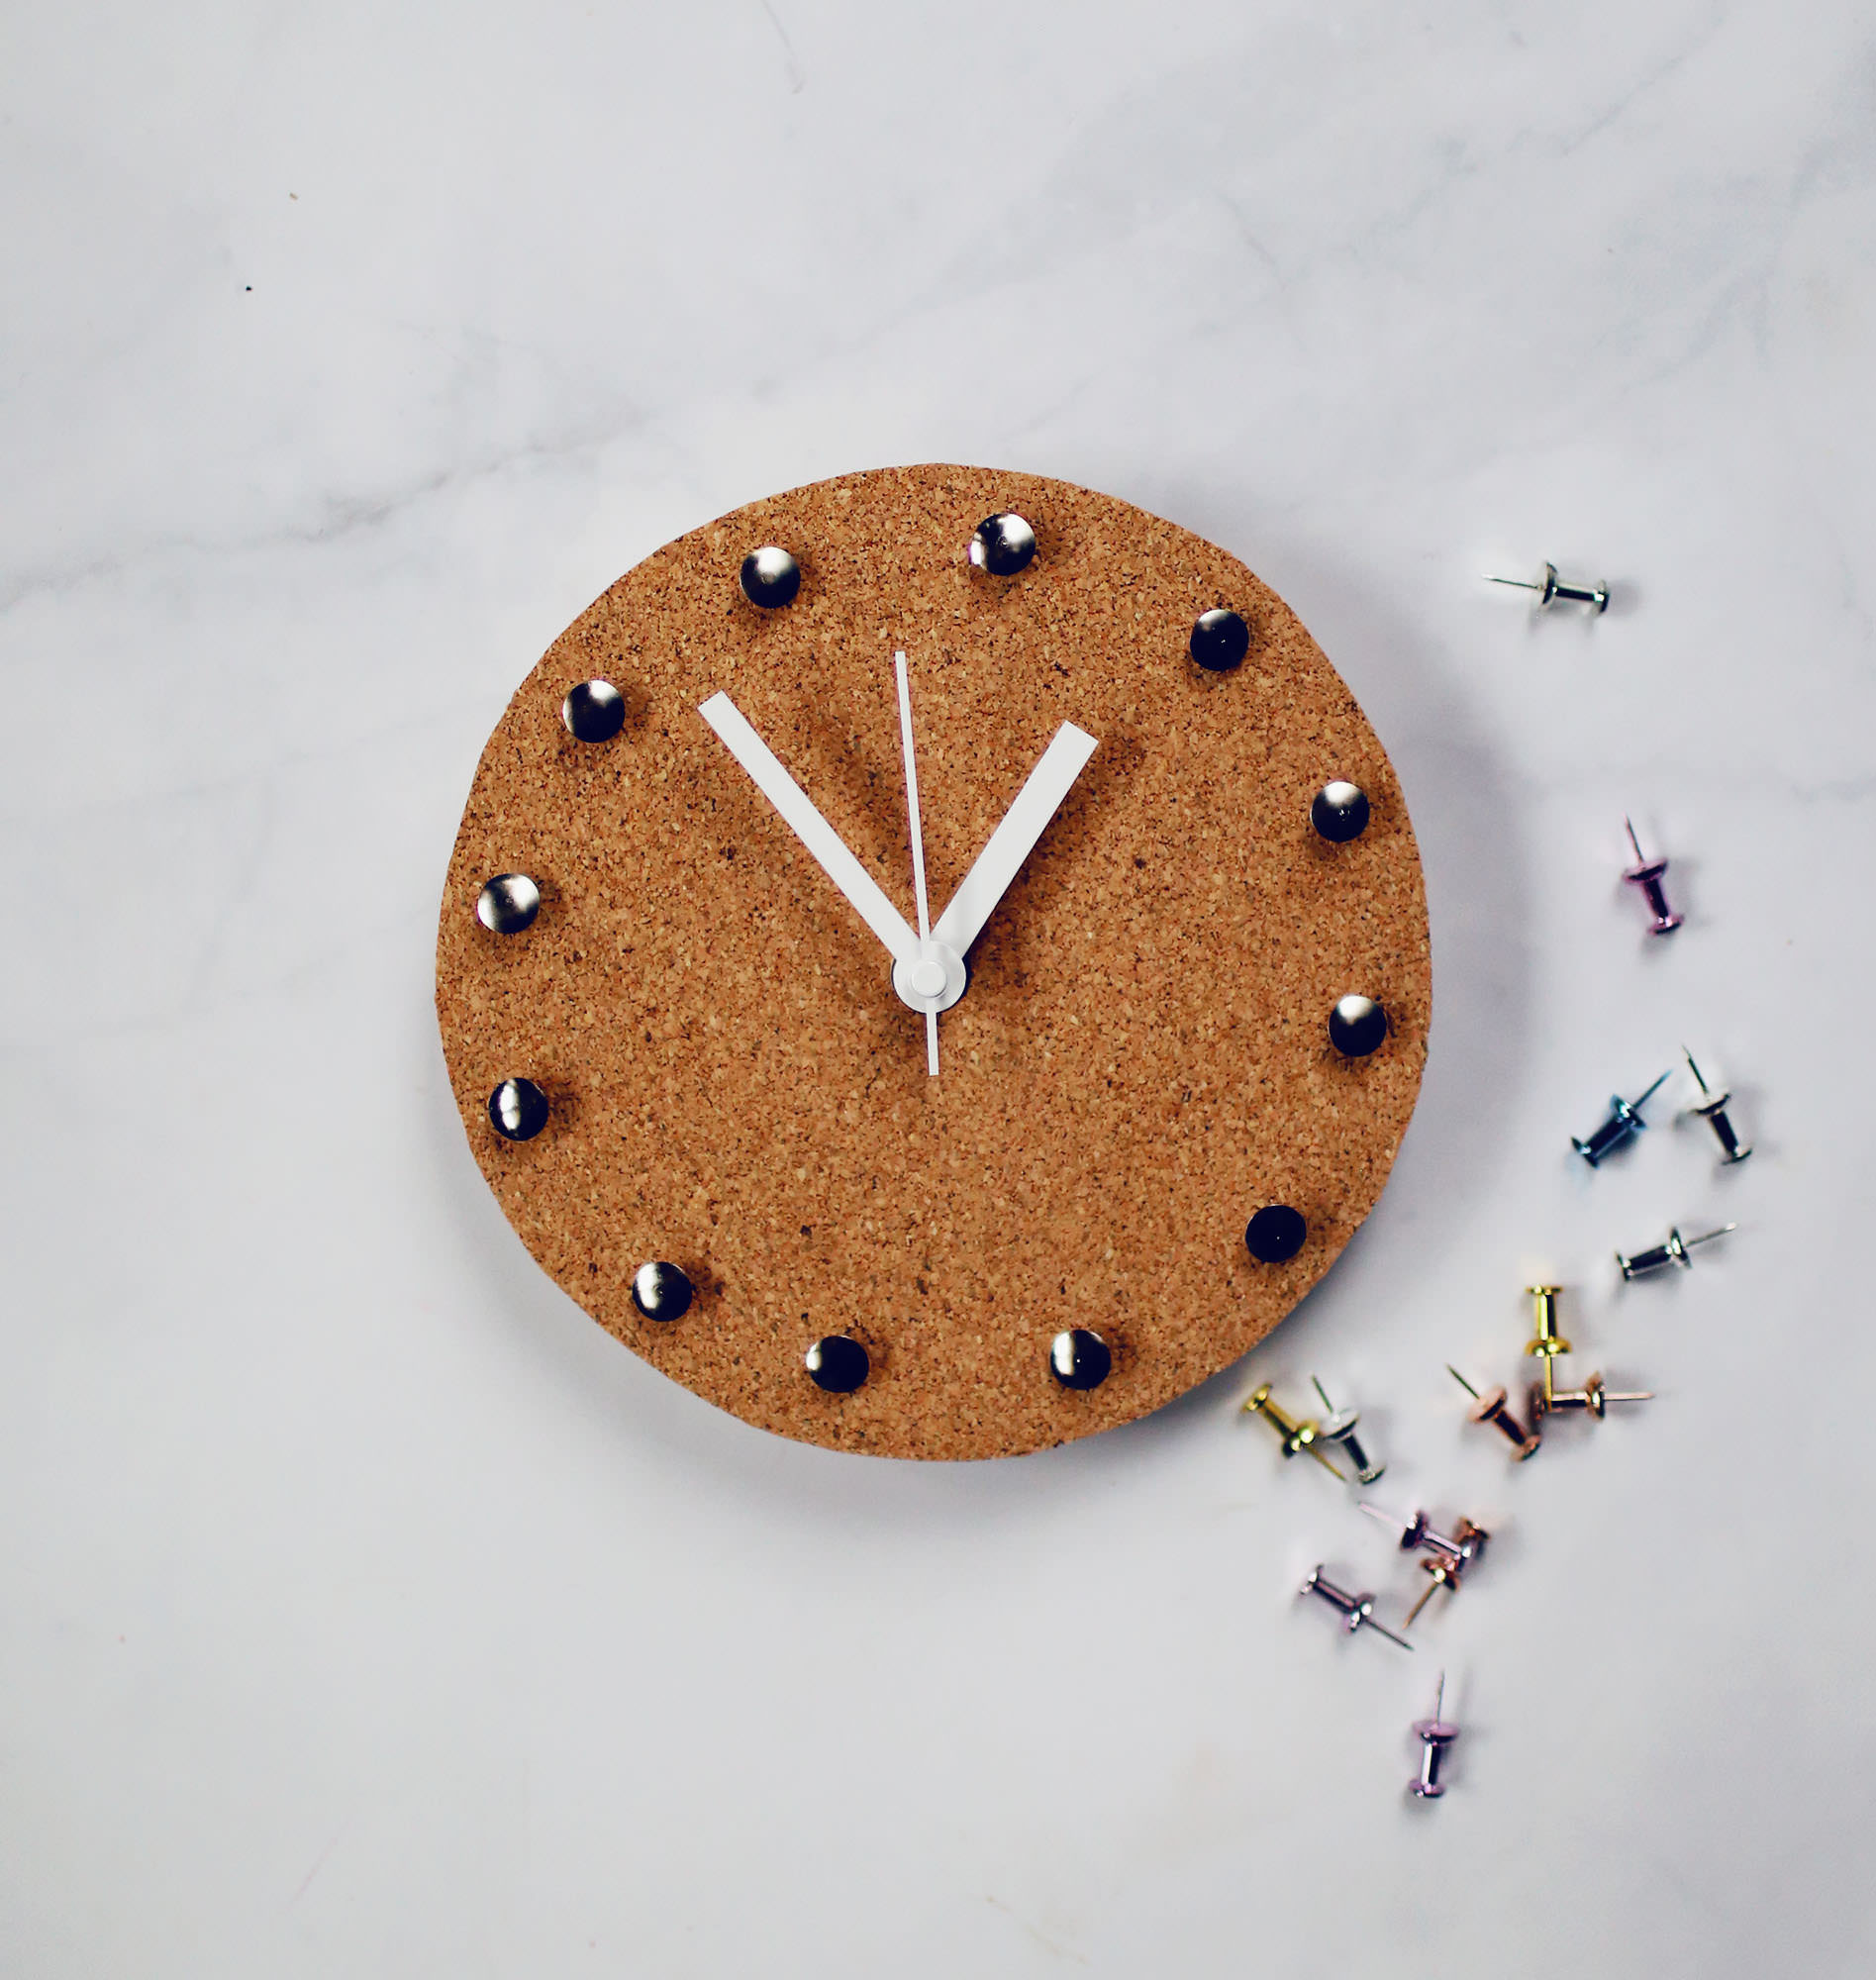 A DIY Cork Clock to decorate your space for the new year